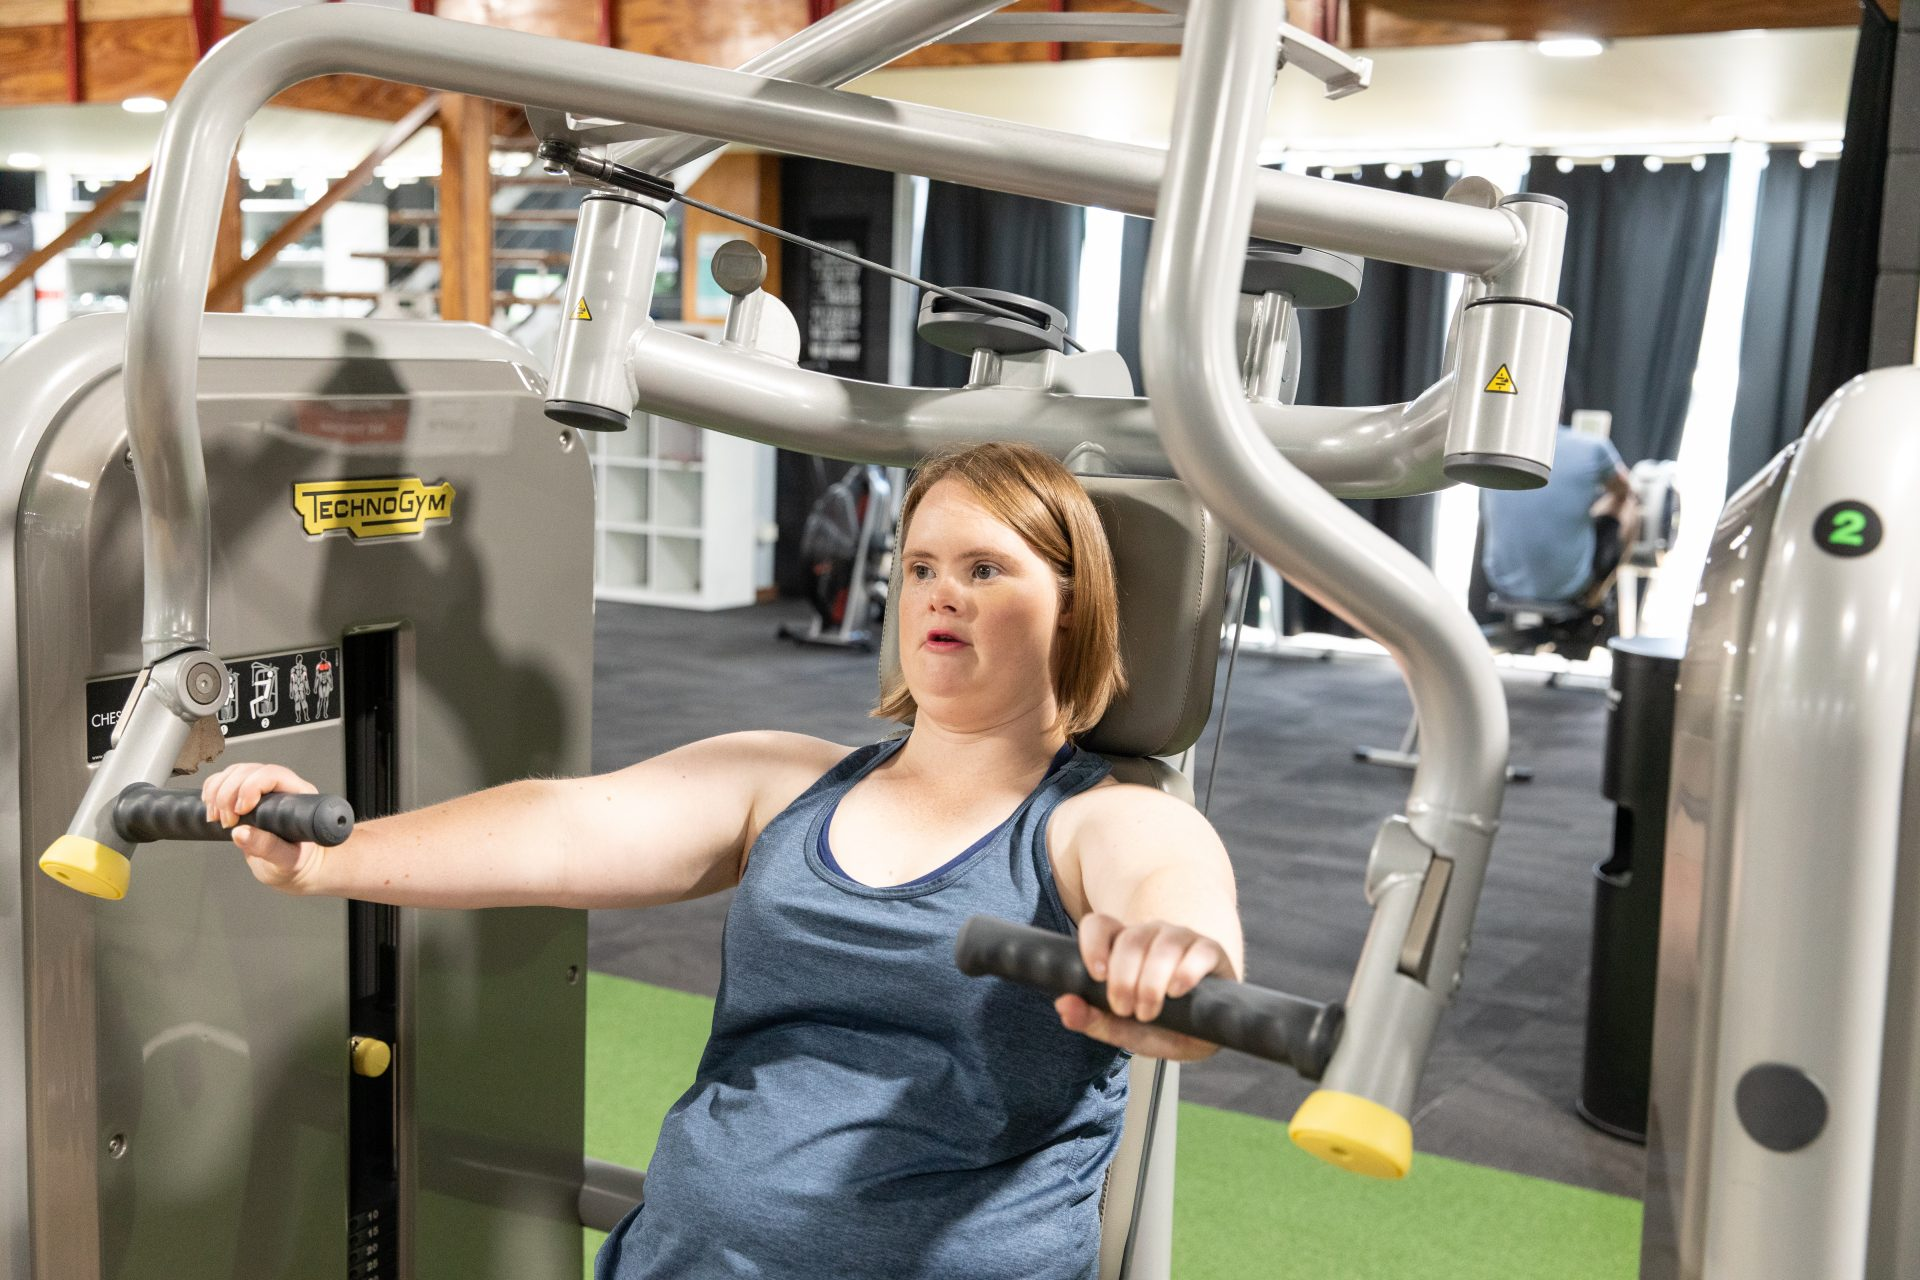 A young woman with Down syndrome uses gym equipment.